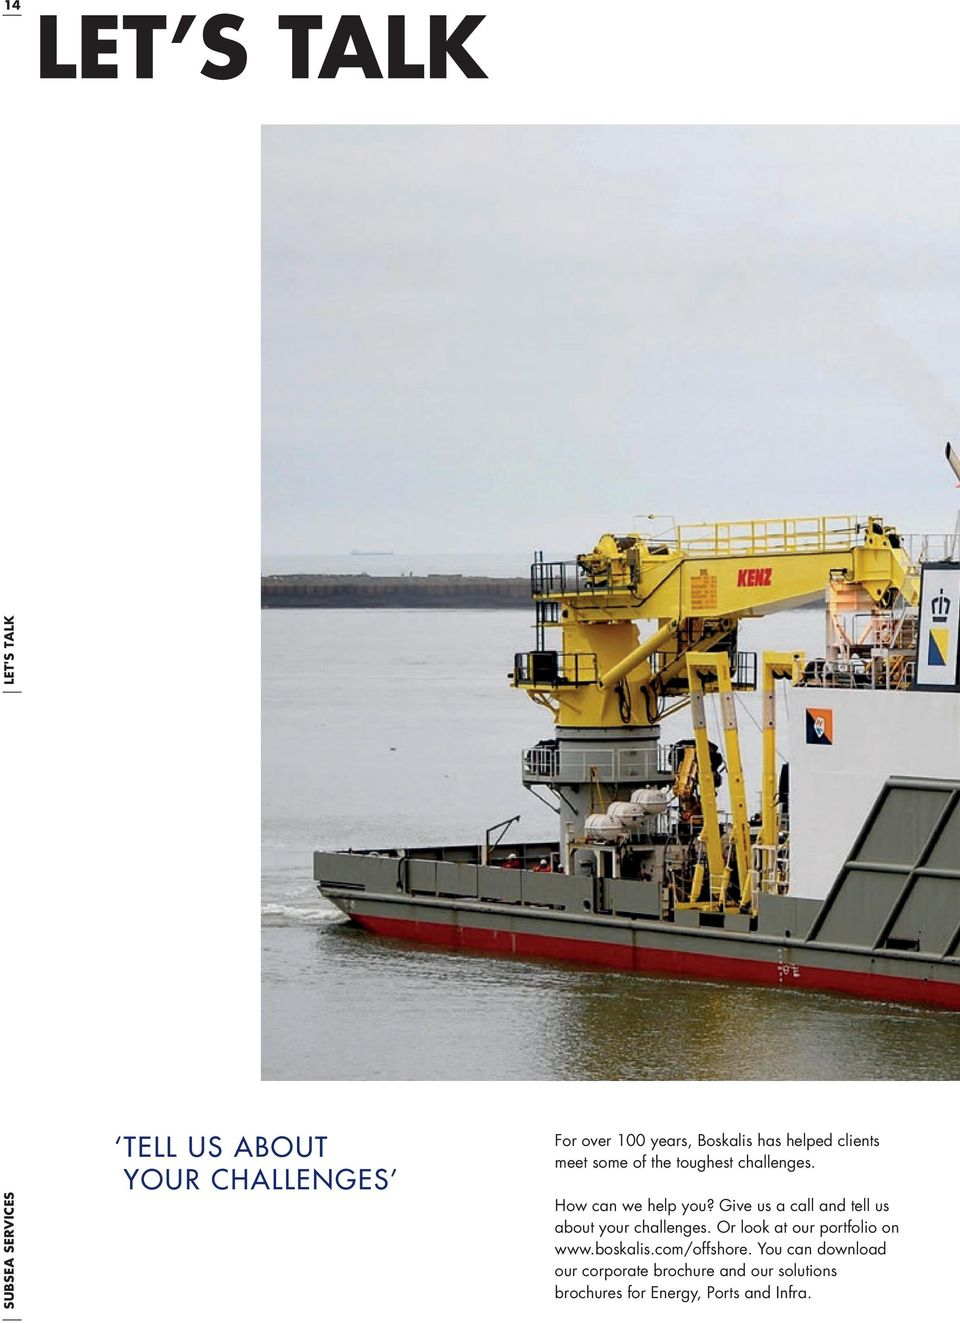 Give us a call and tell us about your challenges. Or look at our portfolio on www.boskalis.